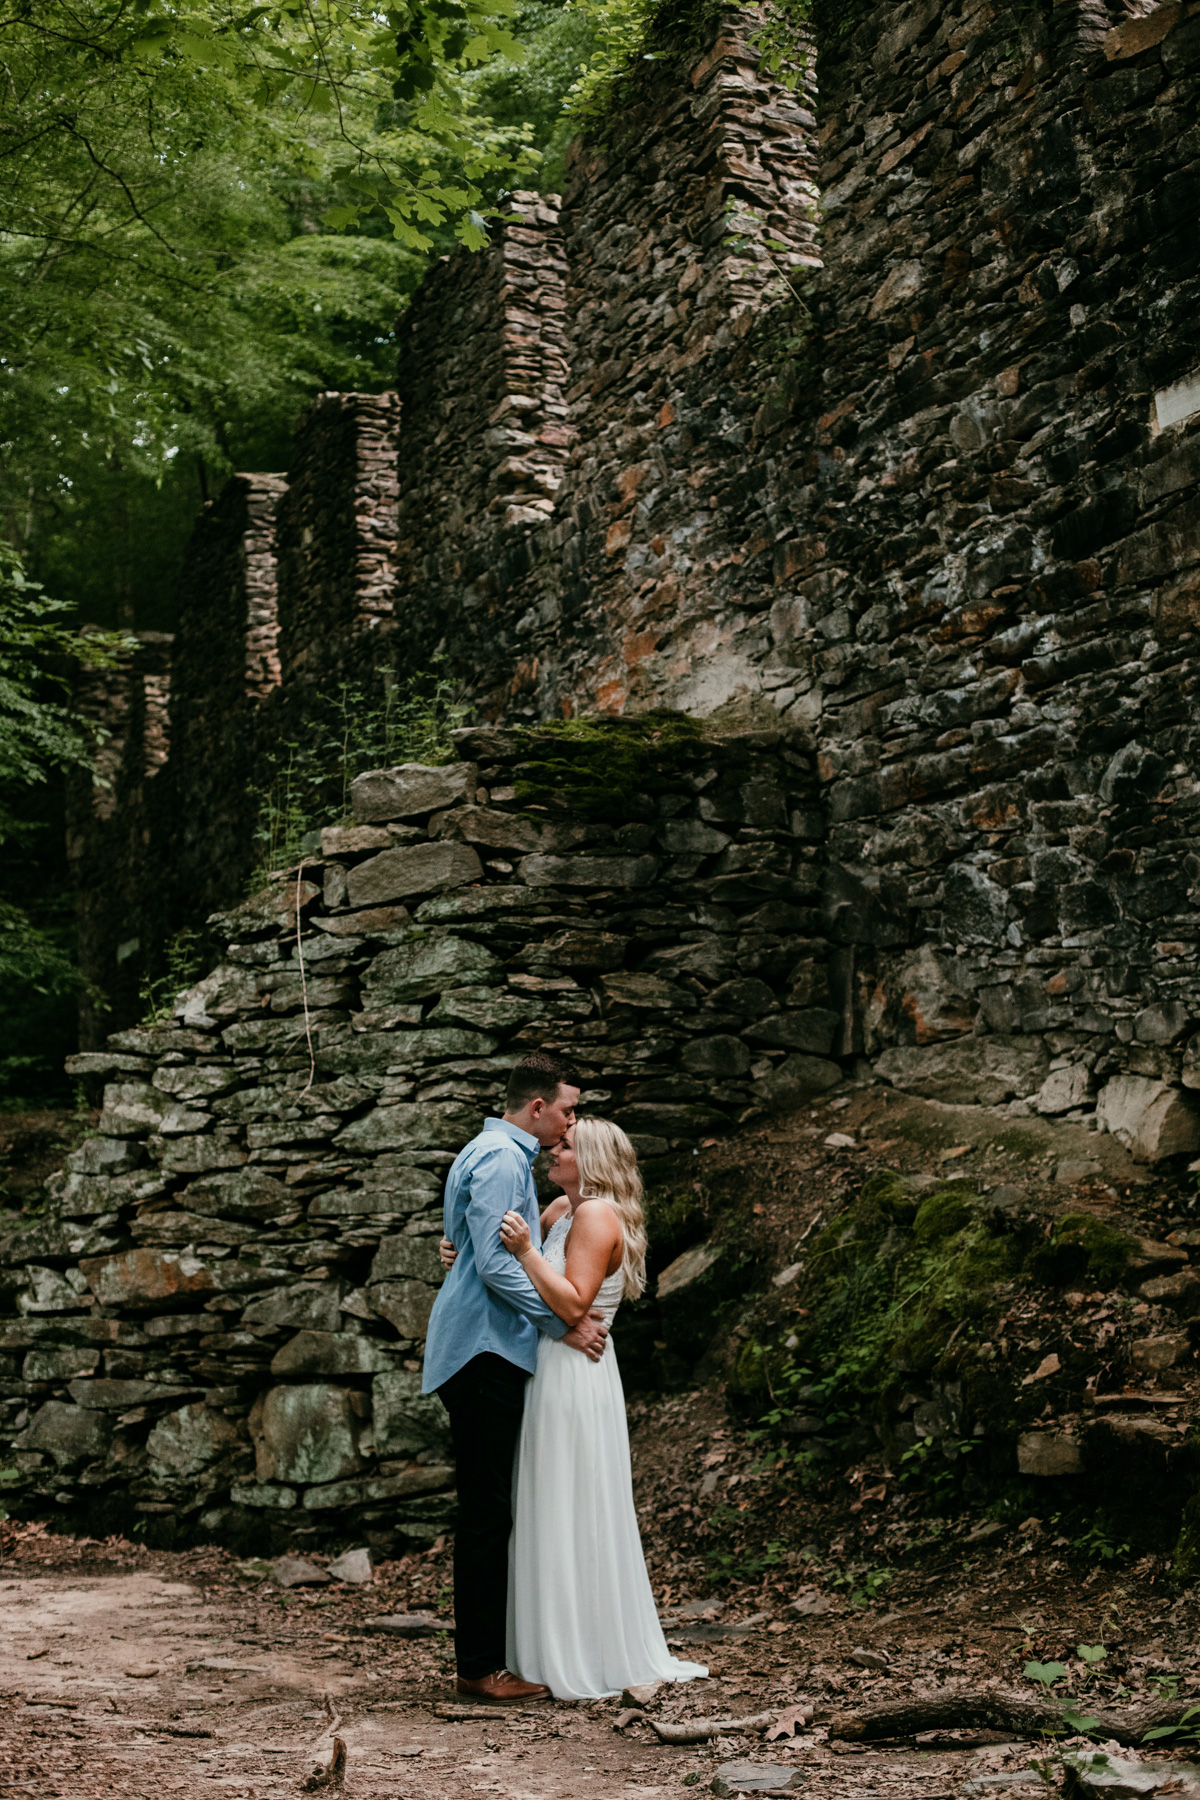 outdoor-engagement-photo-locations-near-me.jpg